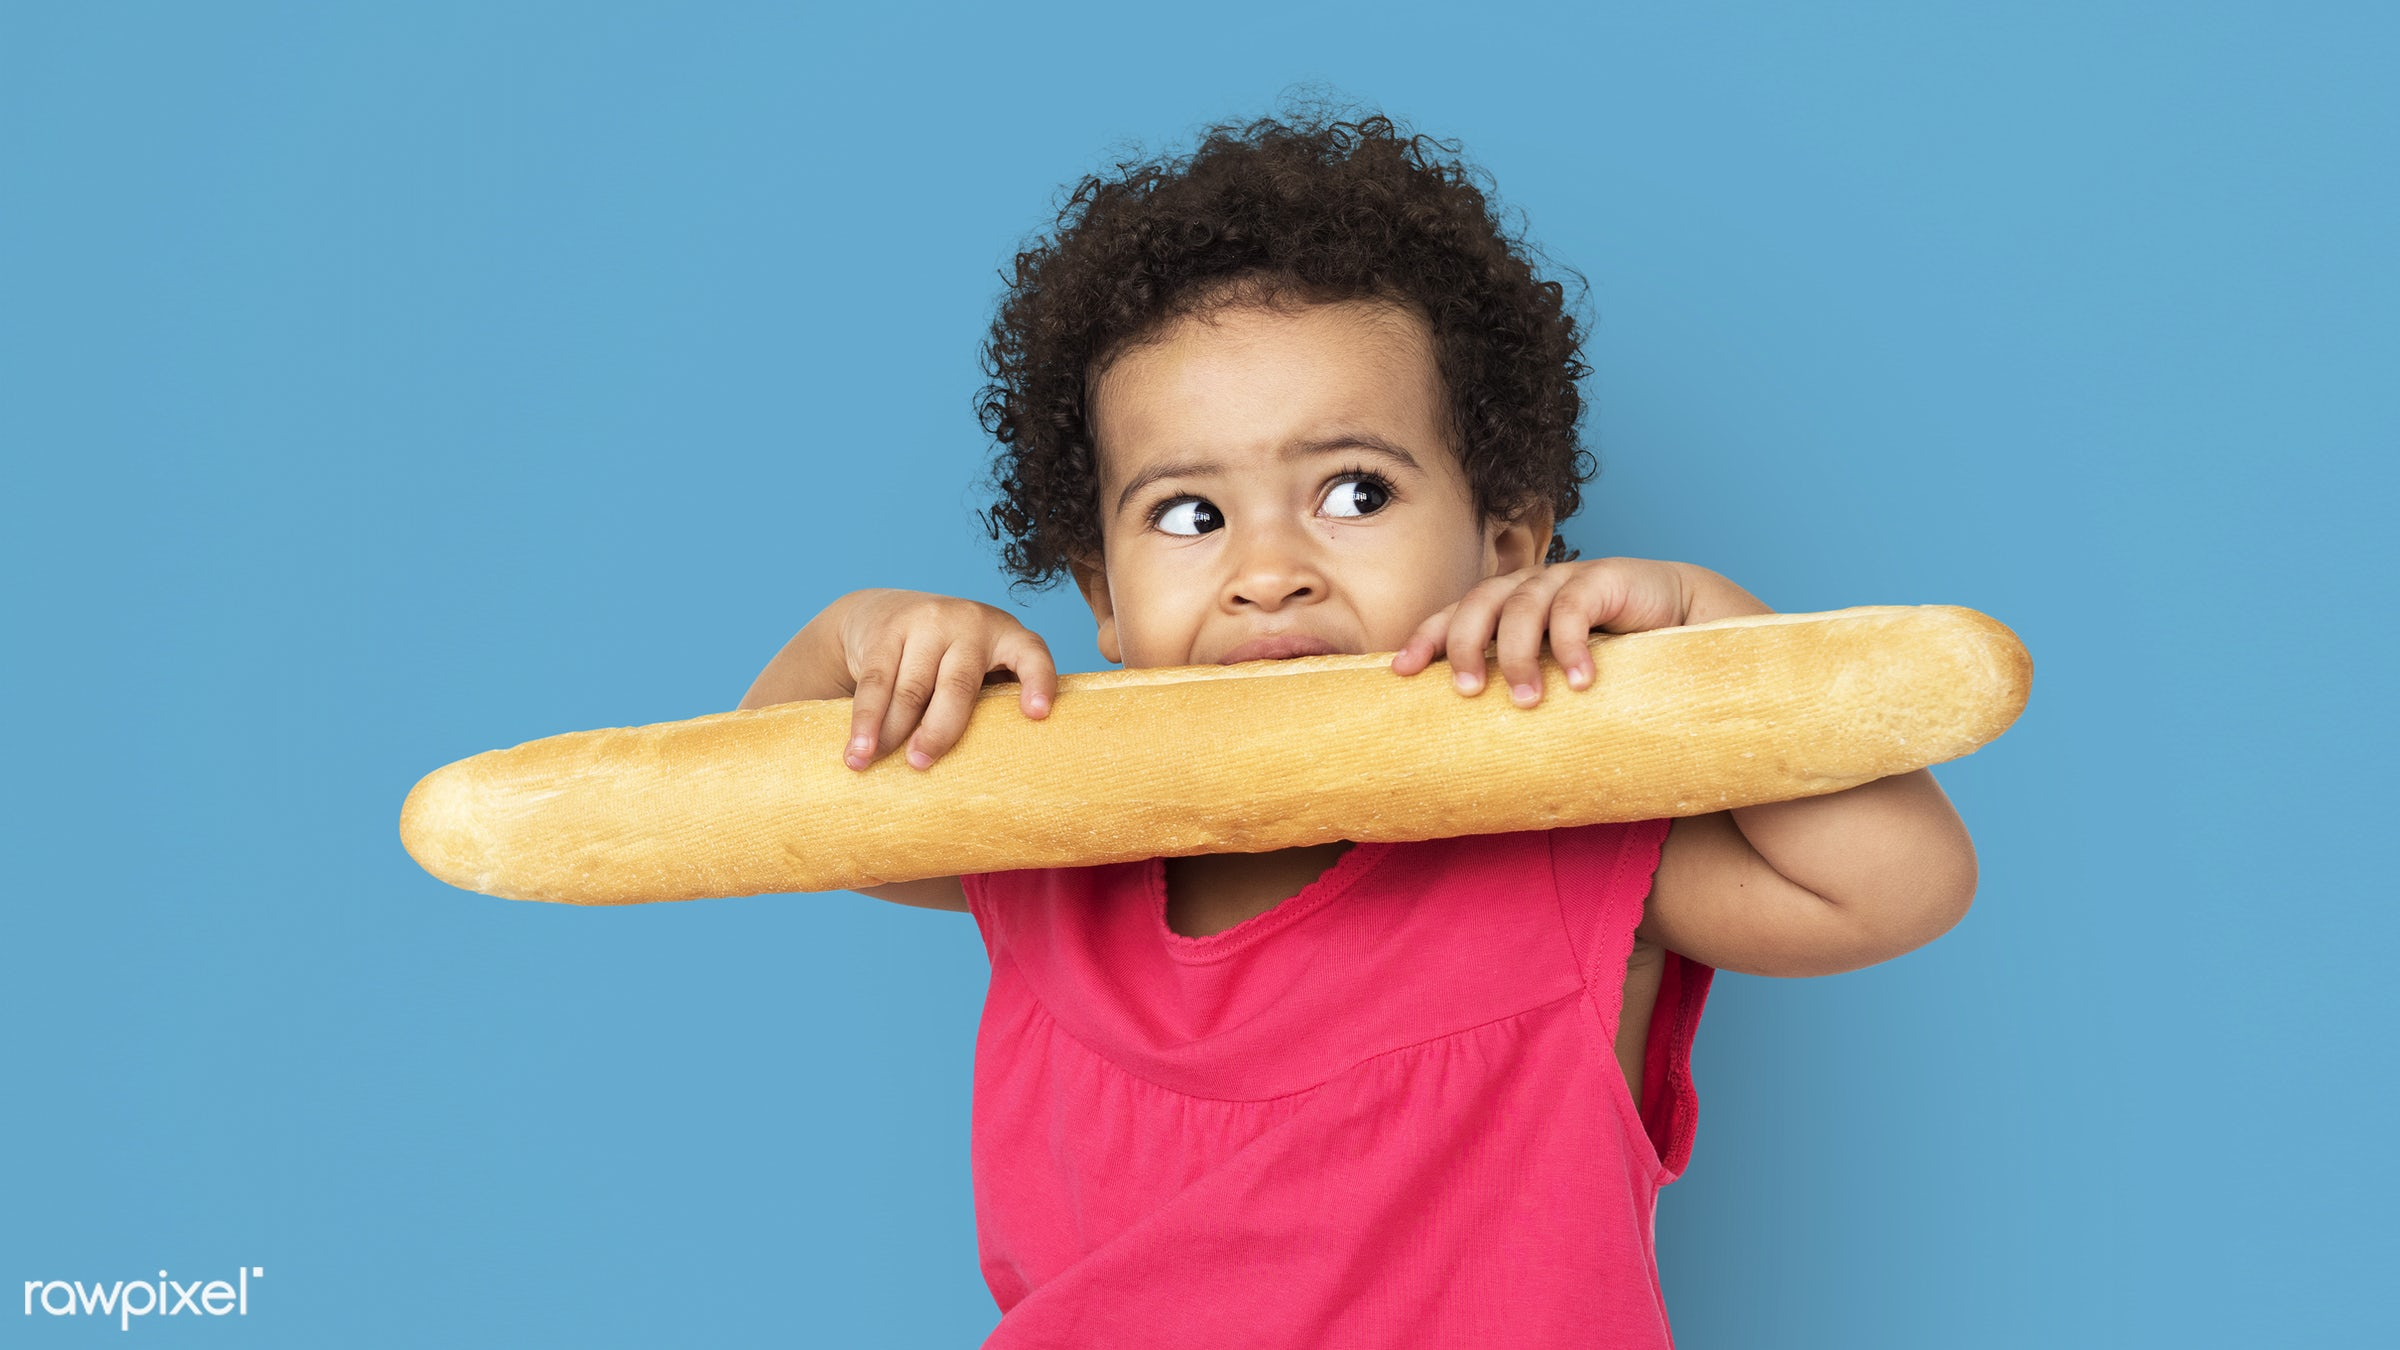 expression, studio, person, hug, little, cute, people, kid, child, pose, girl, joyous, bread, happy, cheerful, isolated,...